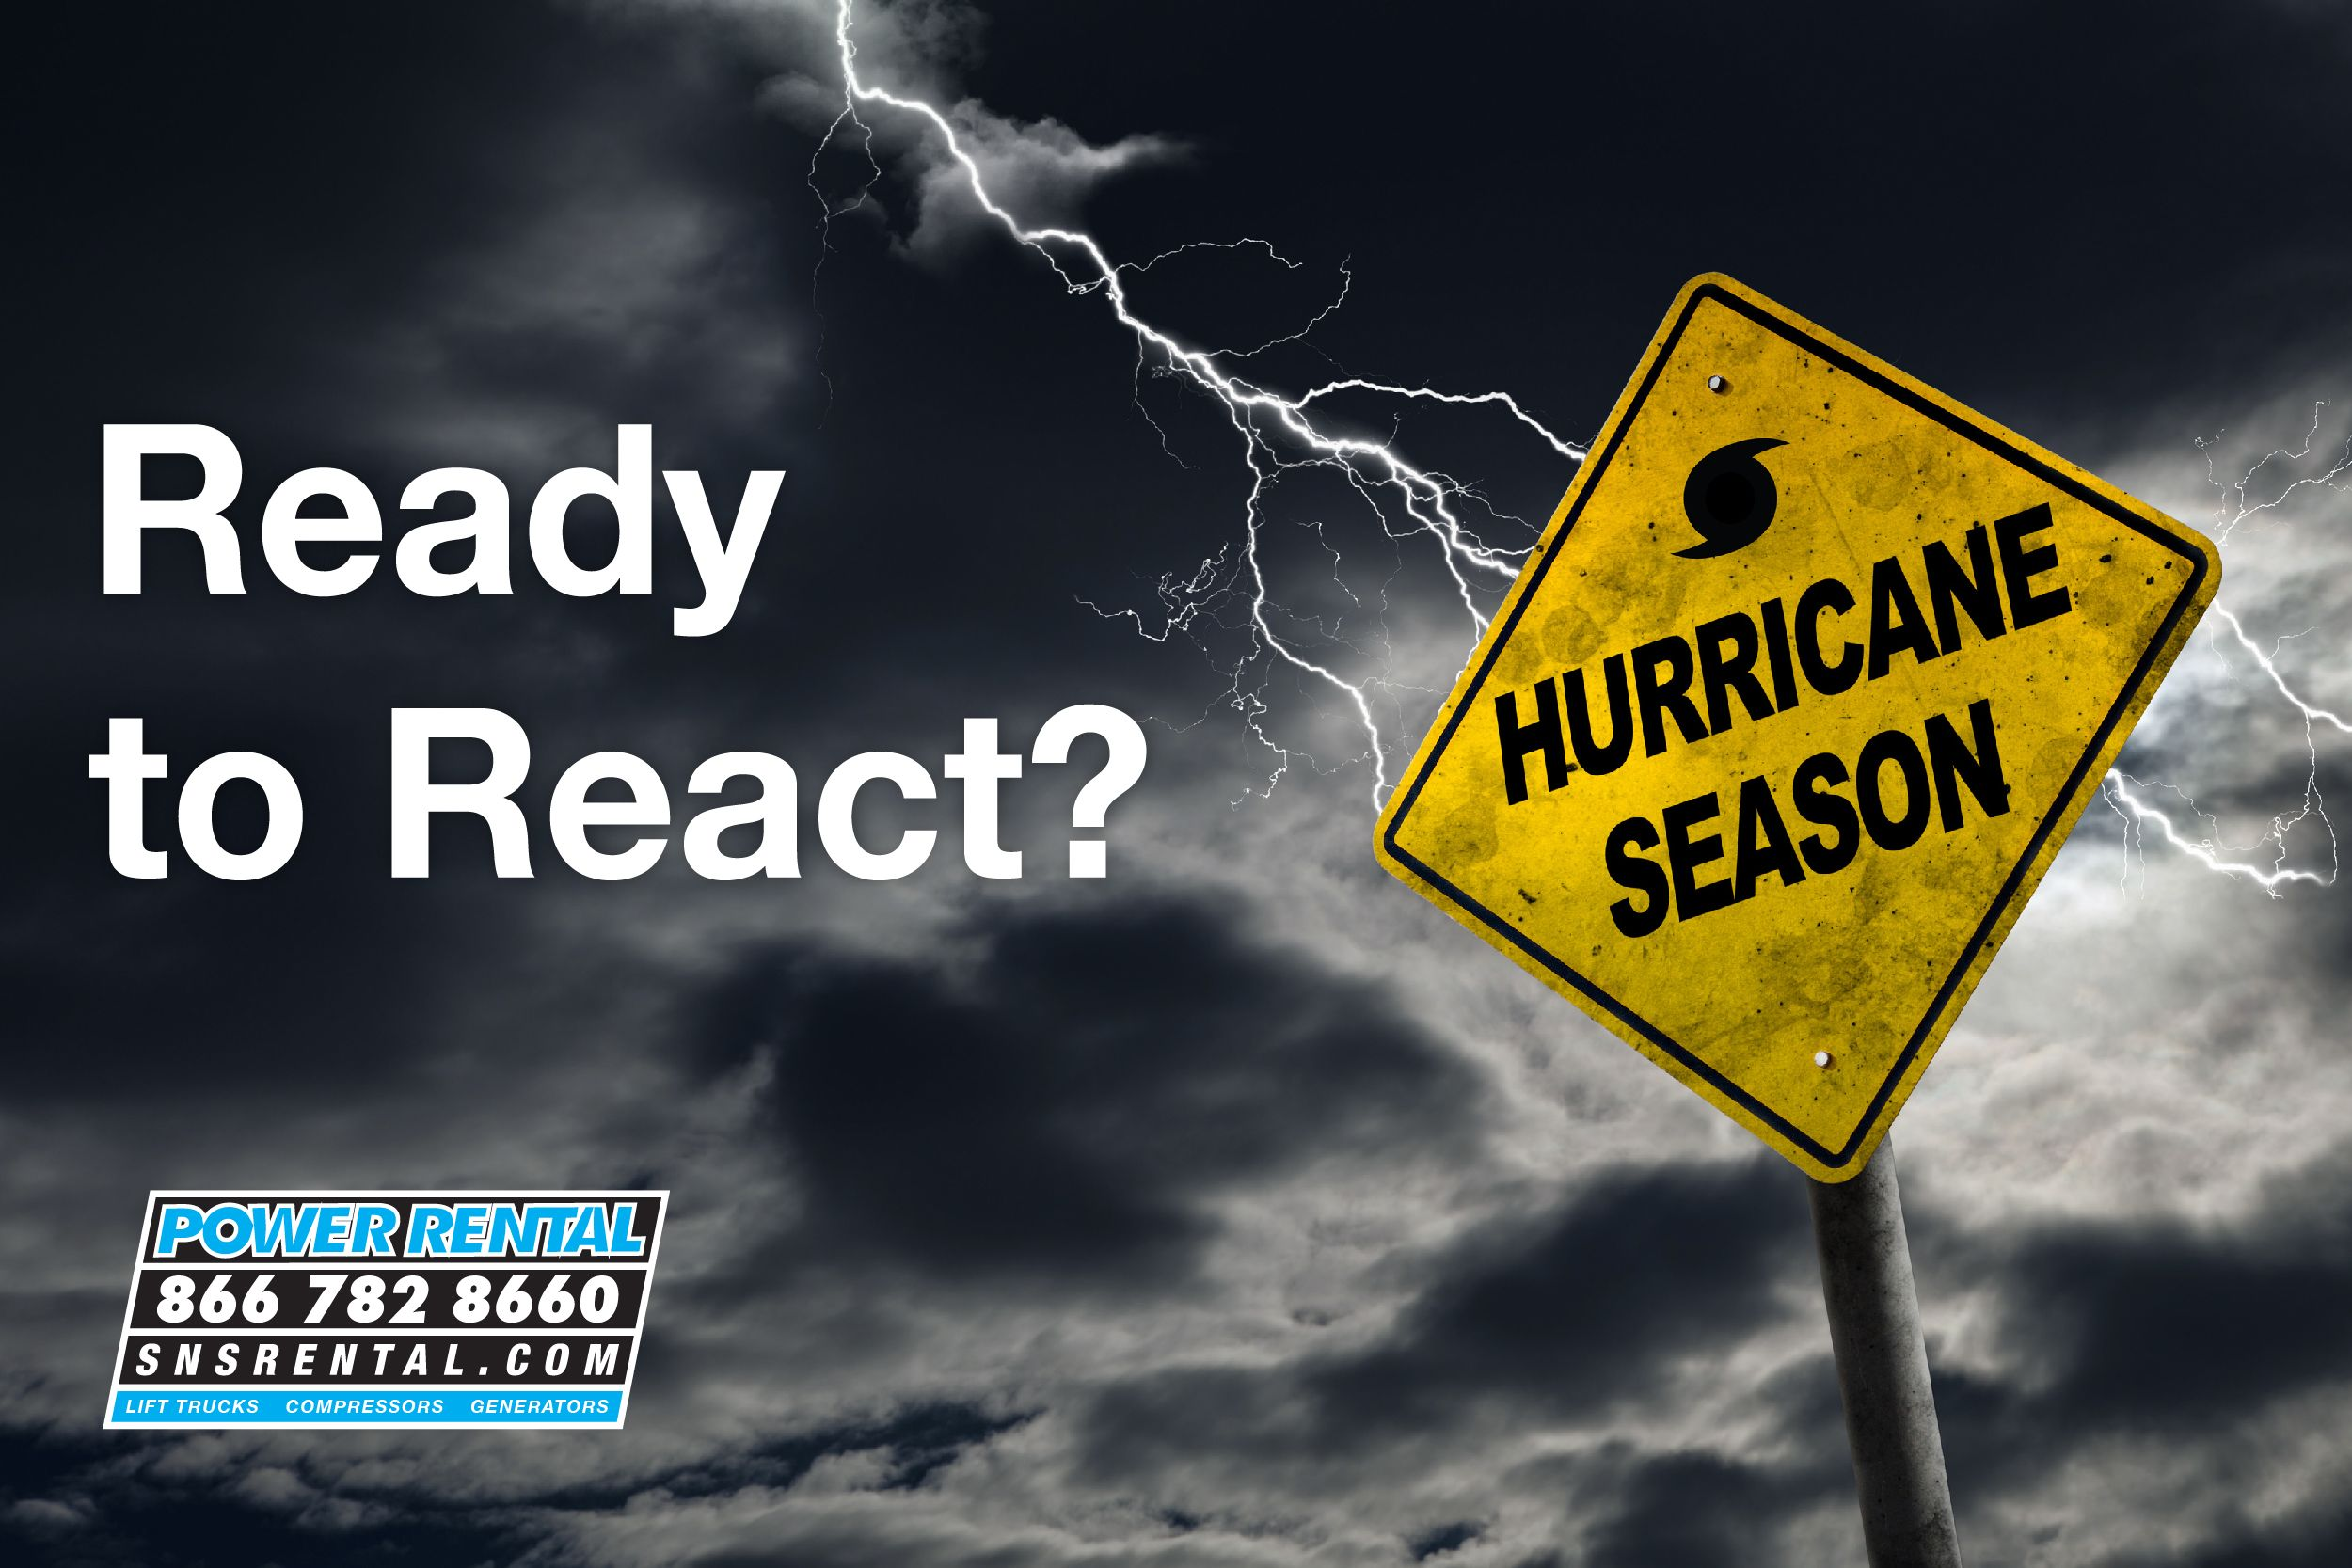 Ready to react in emergency weather events? Stewart